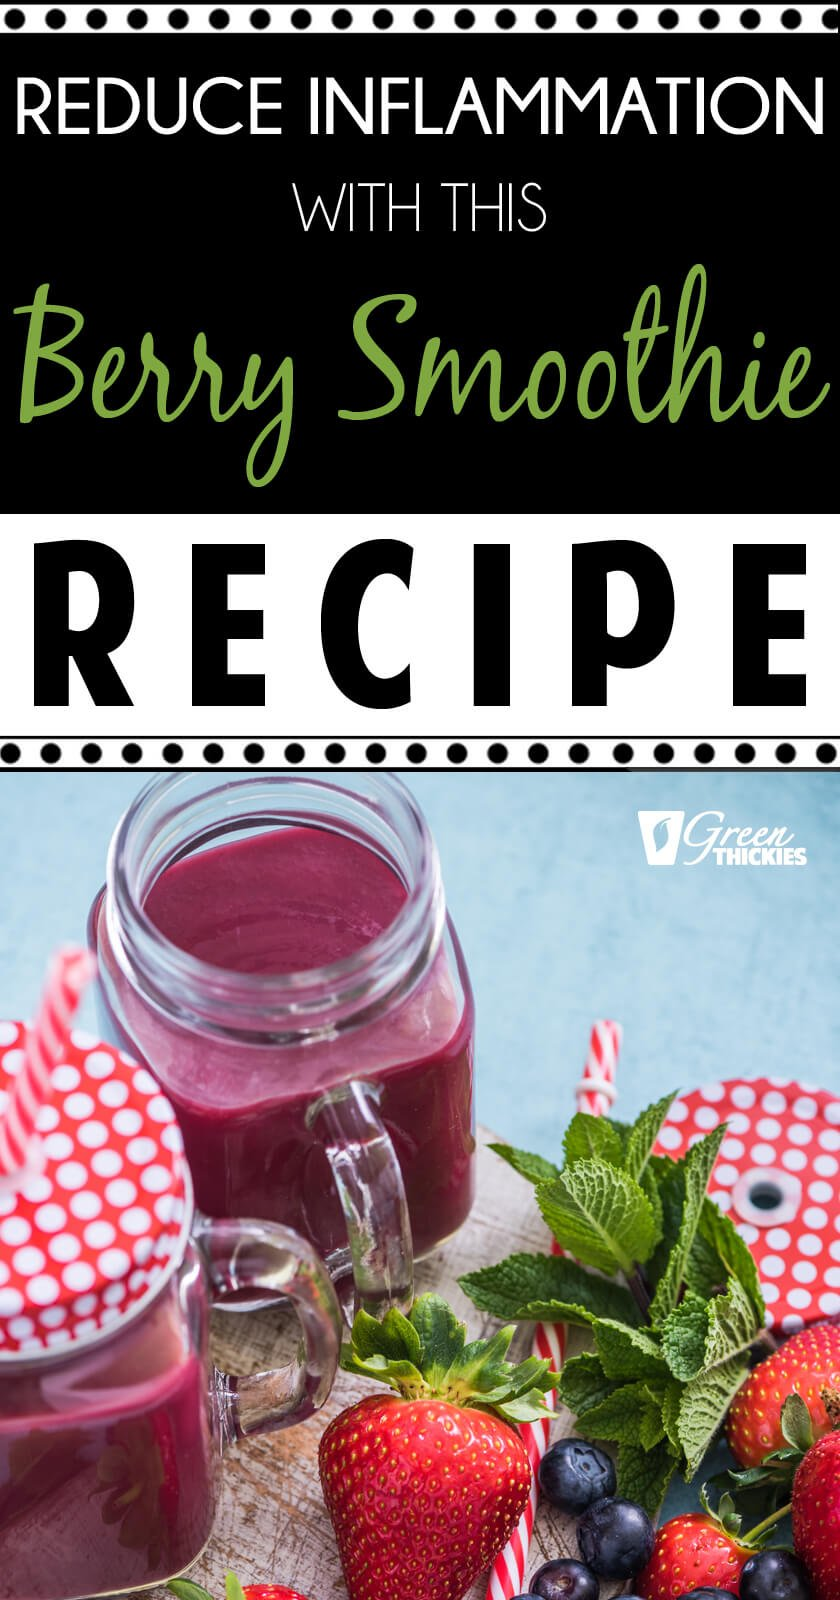 Berry Smoothie Recipe: Reduce Inflammation This antioxidant loaded berry smoothie recipe has a variety of fibre rich berries. It is full of antioxidants which protect your body from inflammation. You will need water, oat milk, strawberries, blueberries, oats, sesame seeds, nectar, dessicated coconut, spinach or green powder #greenthickies #berrysmoothie #smoothie #reduceinflammation #smoothie #dairyfree #vegan #glutenfree #sugarfree #delicious #healthy #healthysmoothie